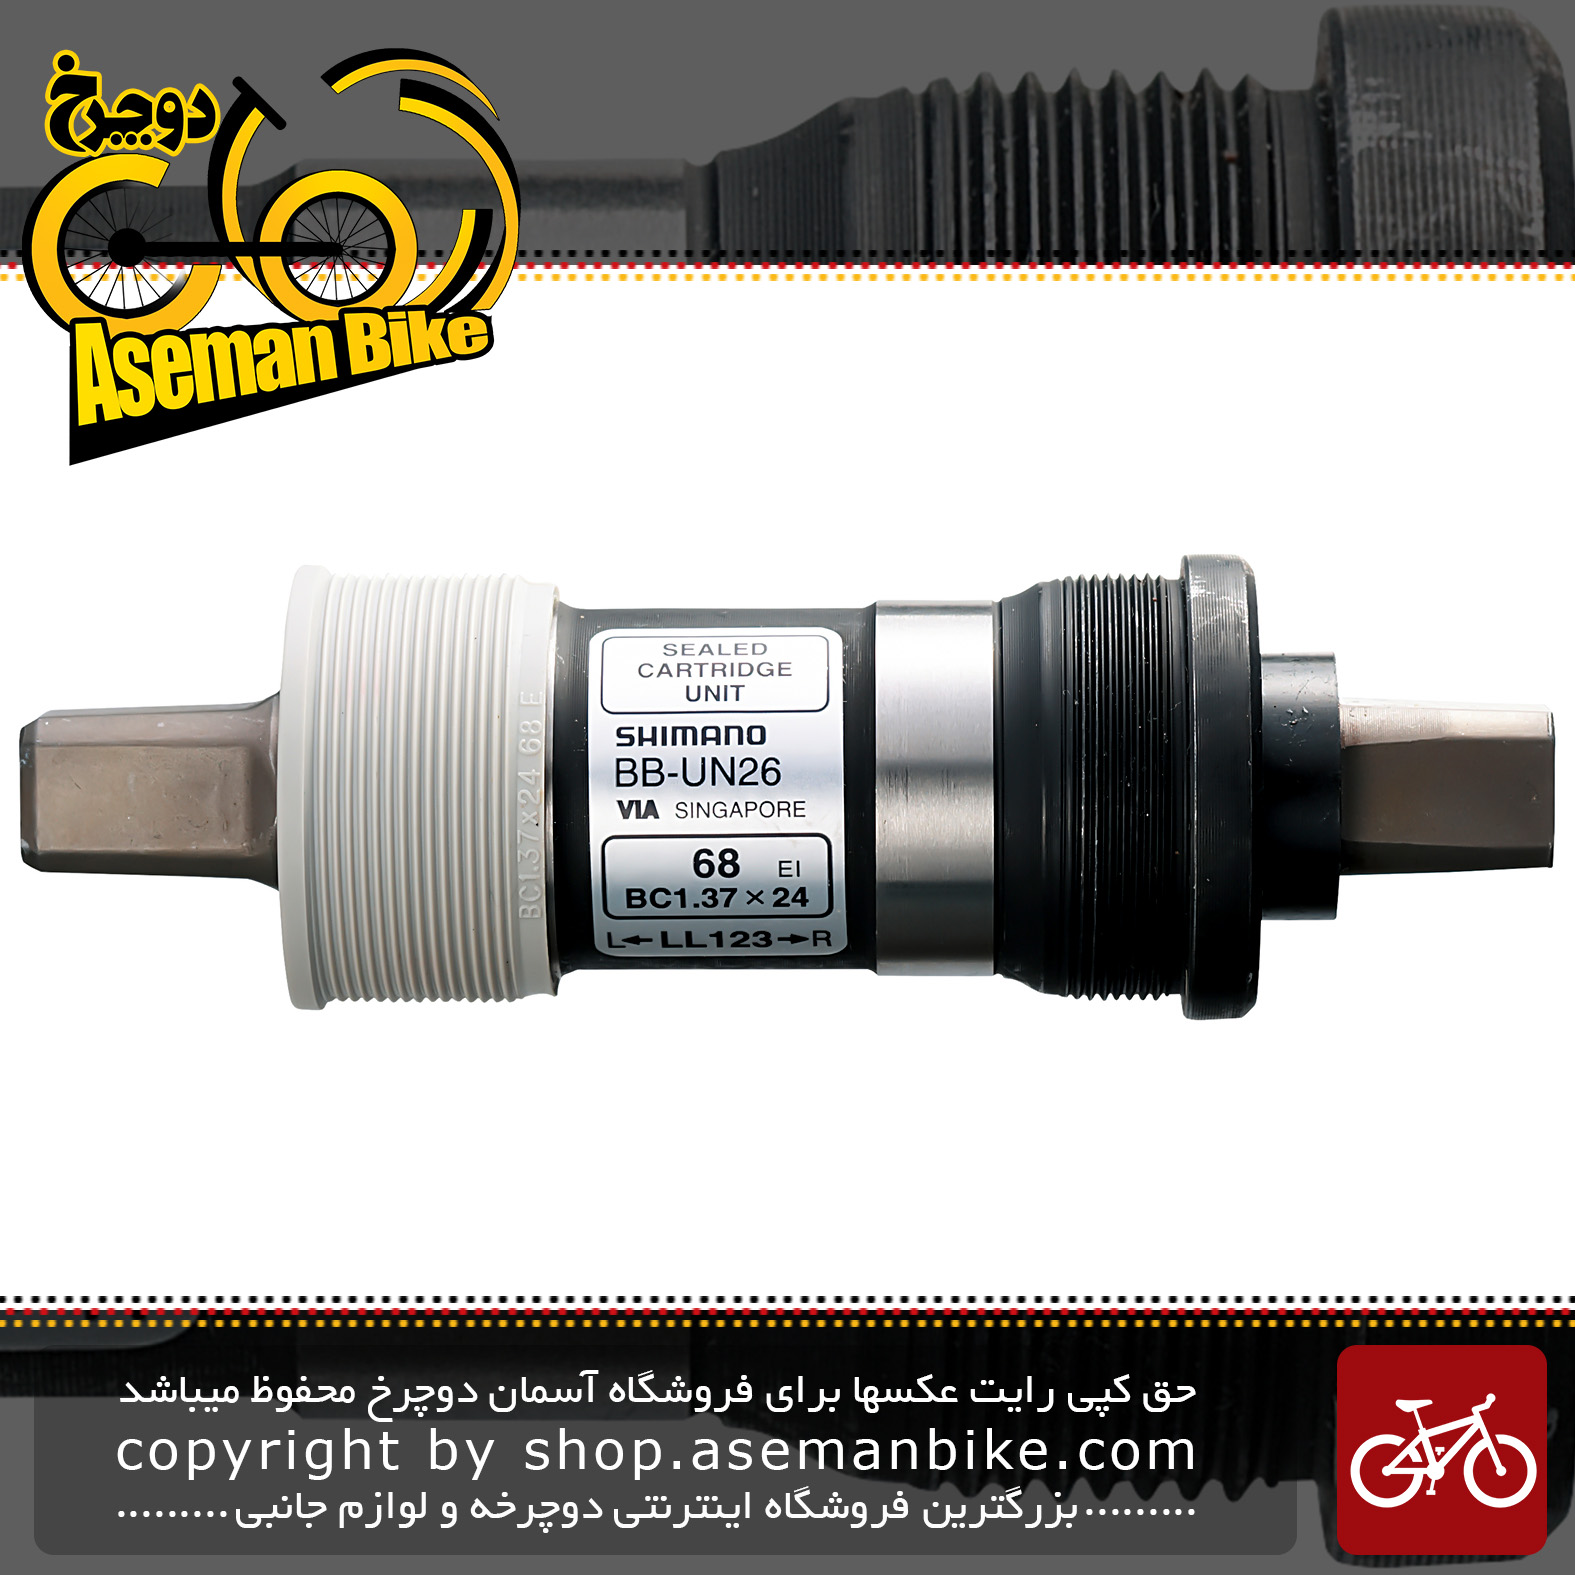 توپی تنه دوچرخه شیمانو Shimano Altus BB-UN26-K Cartridge Bottom Bracket